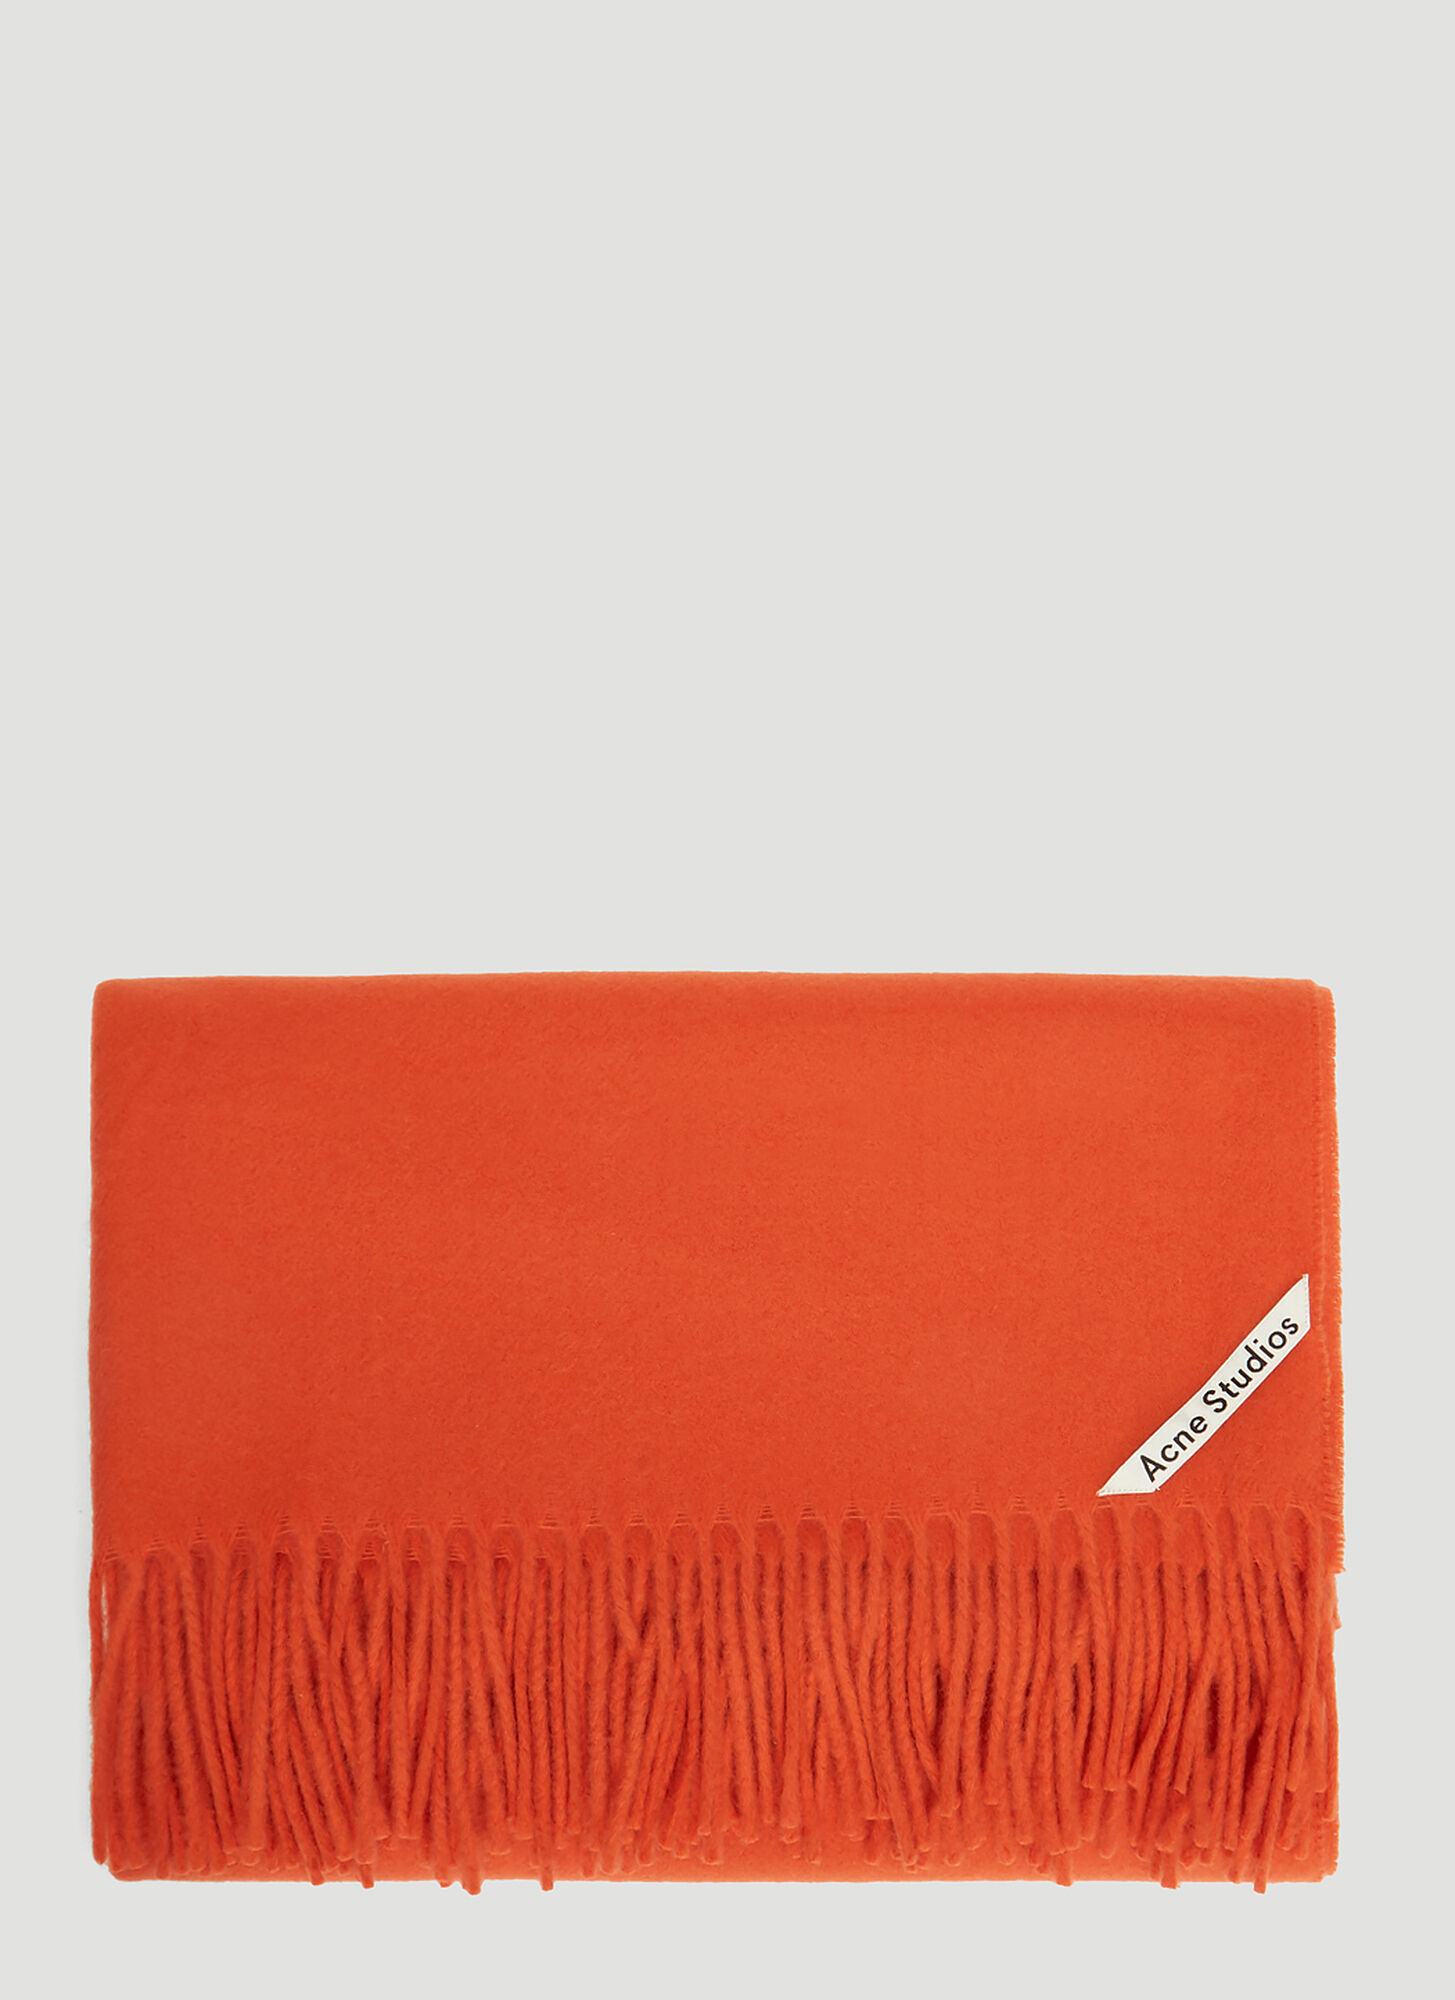 Acne Studios Canada New Scarf in Red